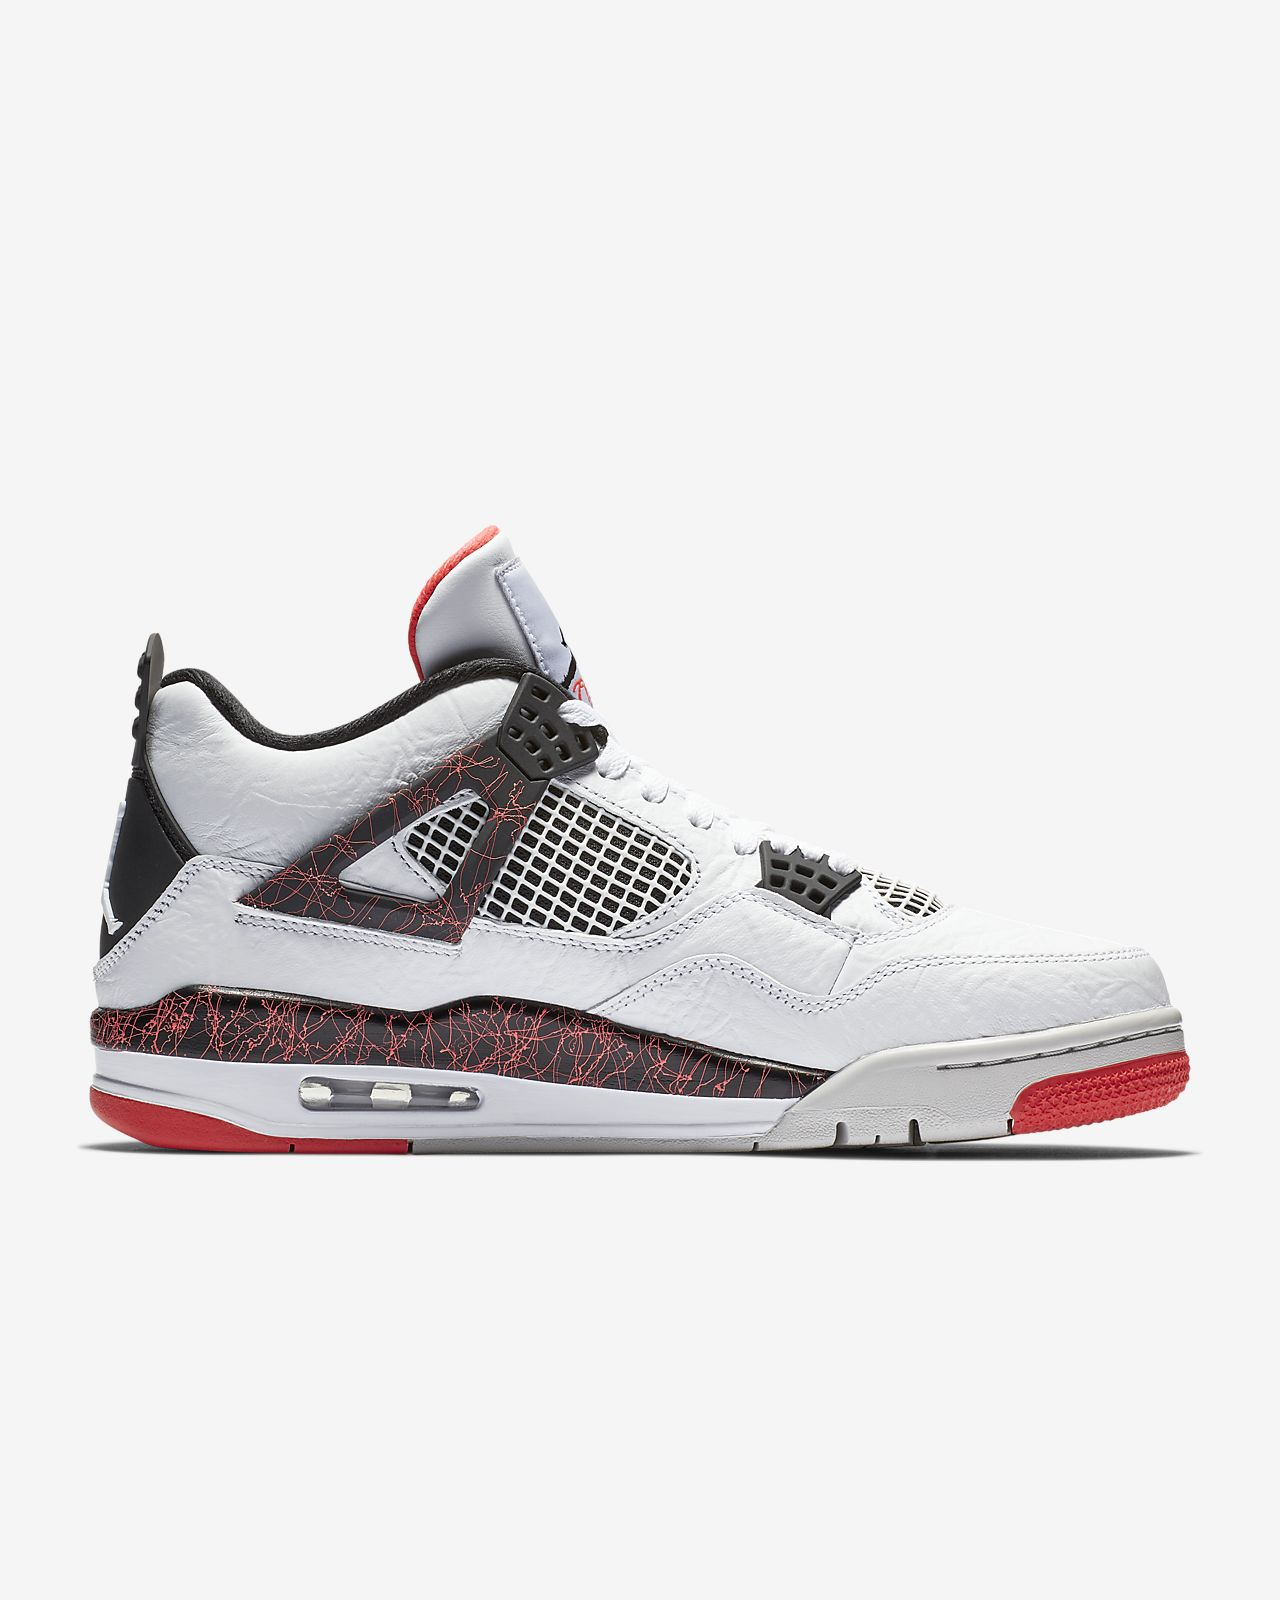 bfeaebe89e81 Air Jordan 4 Retro Men s Shoe. Nike.com ID